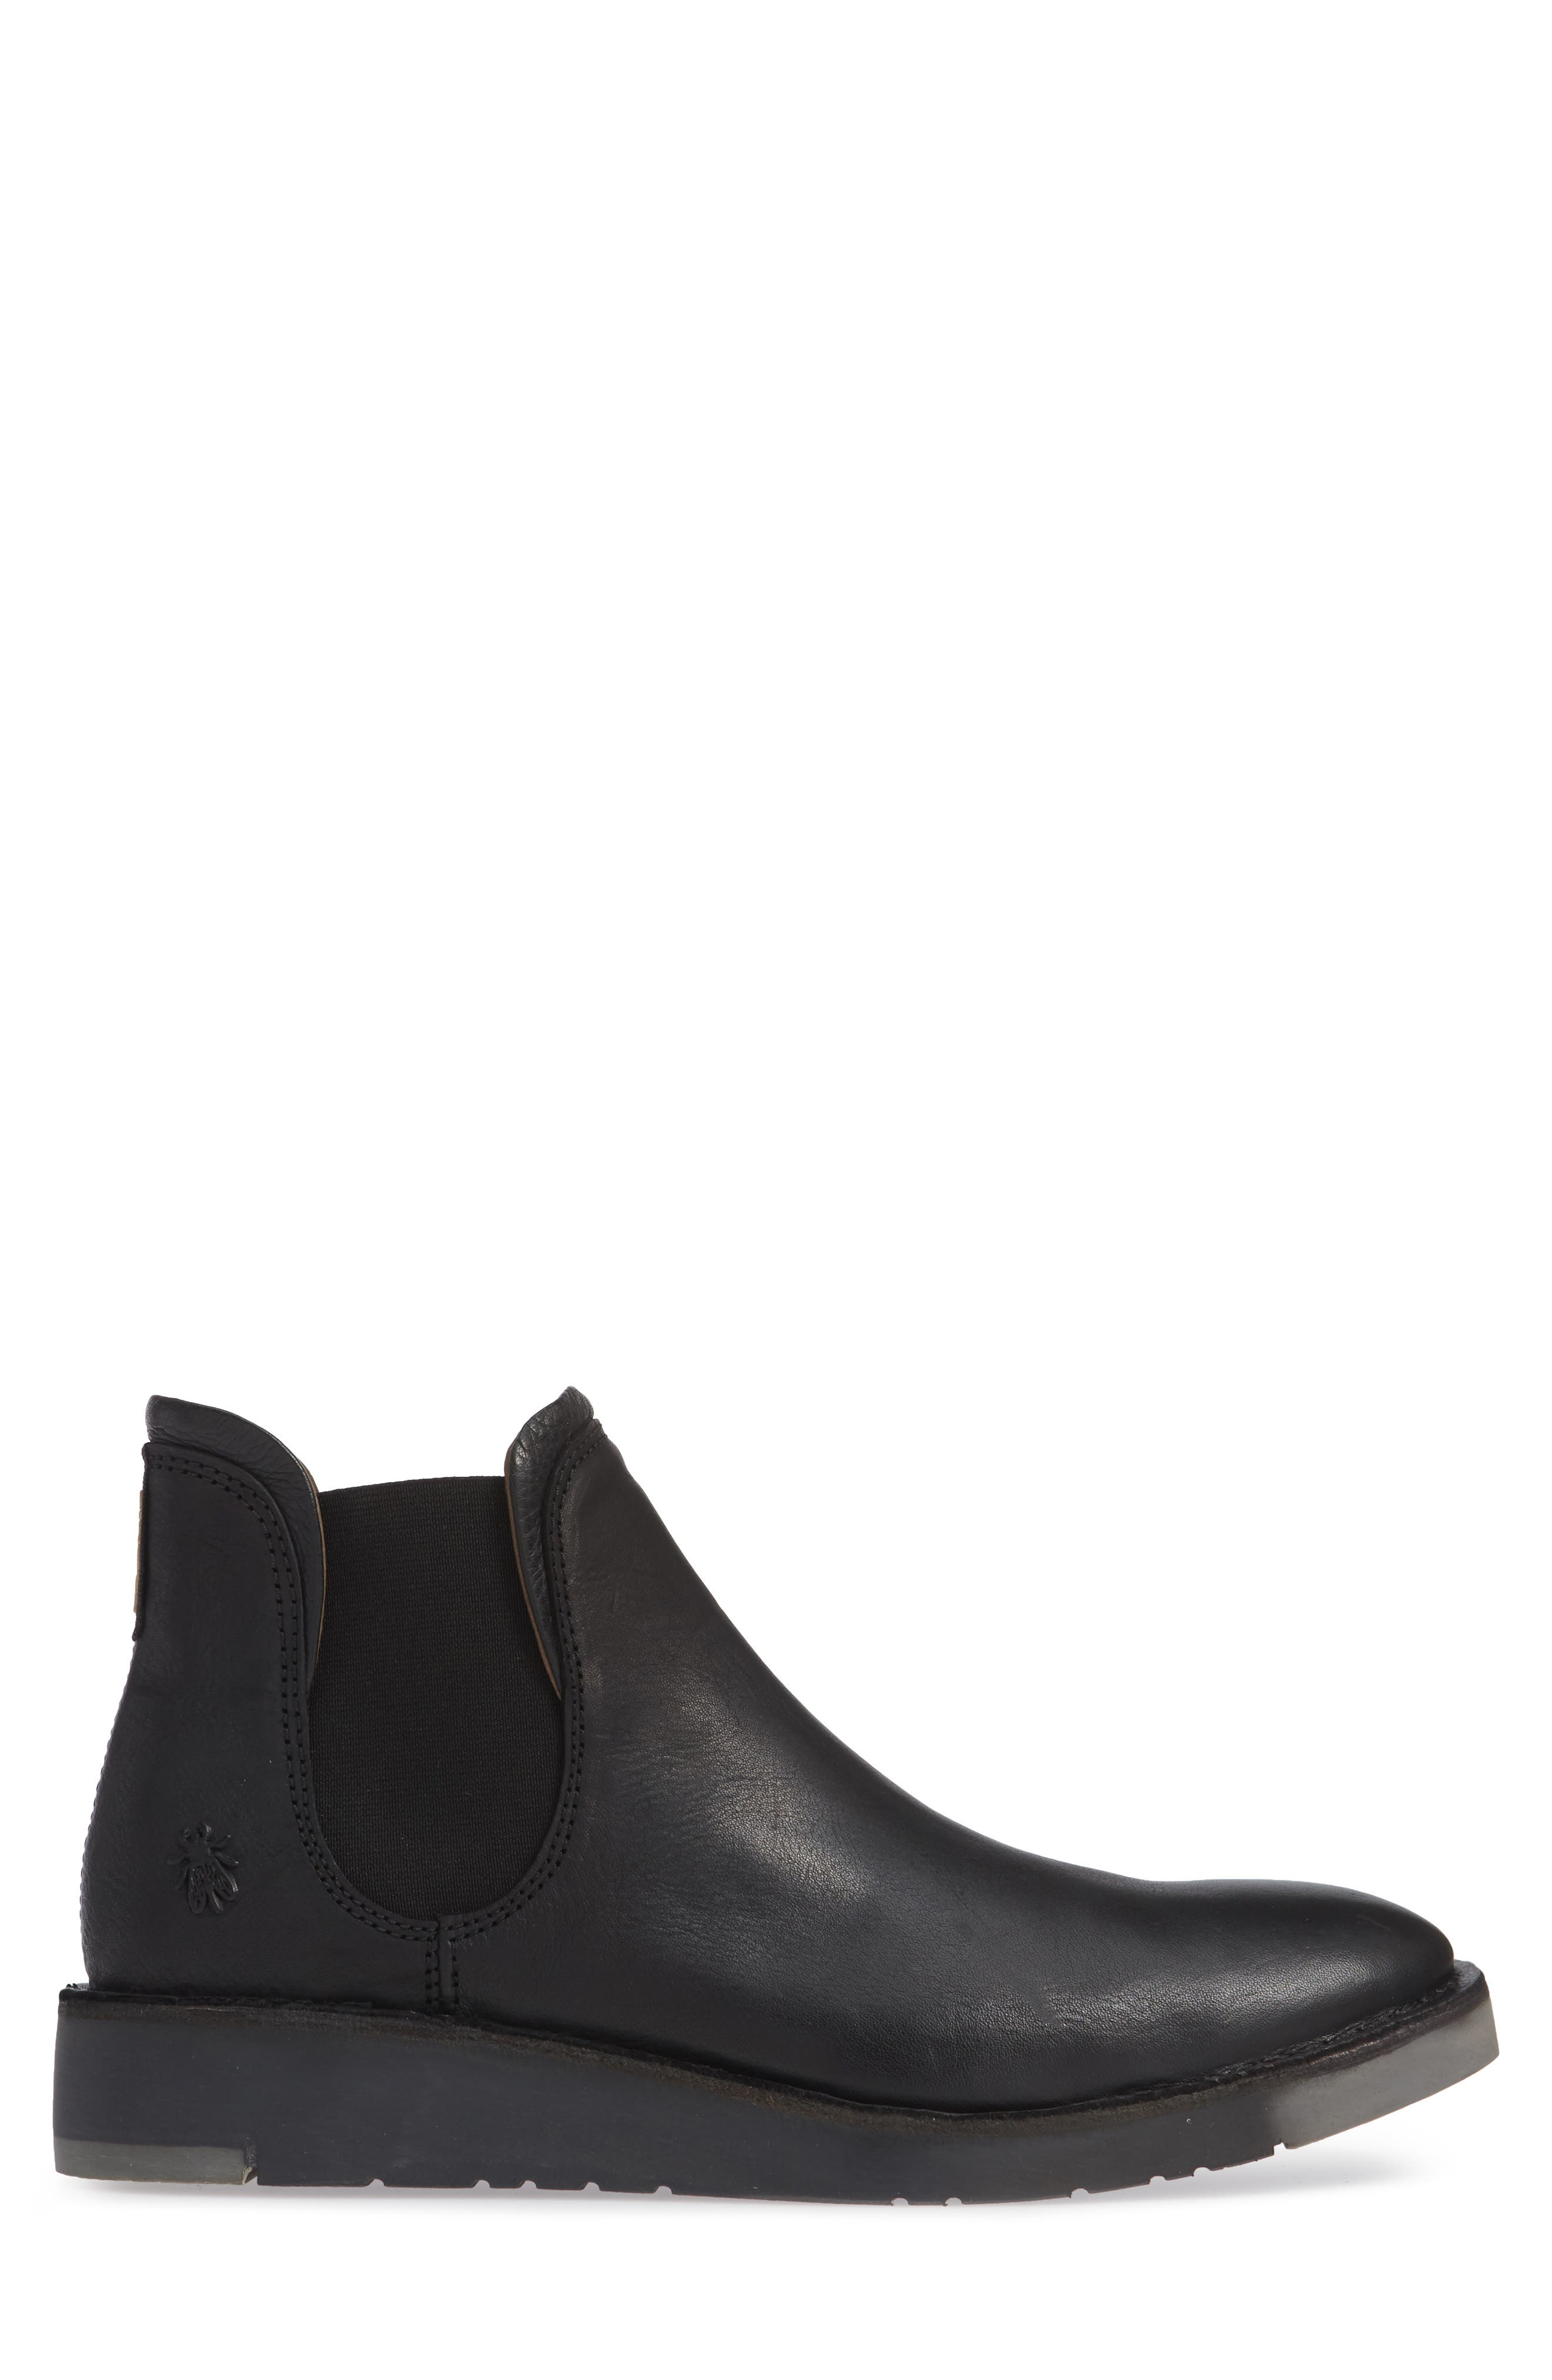 Sern Water Resistant Chelsea Boot,                             Alternate thumbnail 3, color,                             BLACK APSO